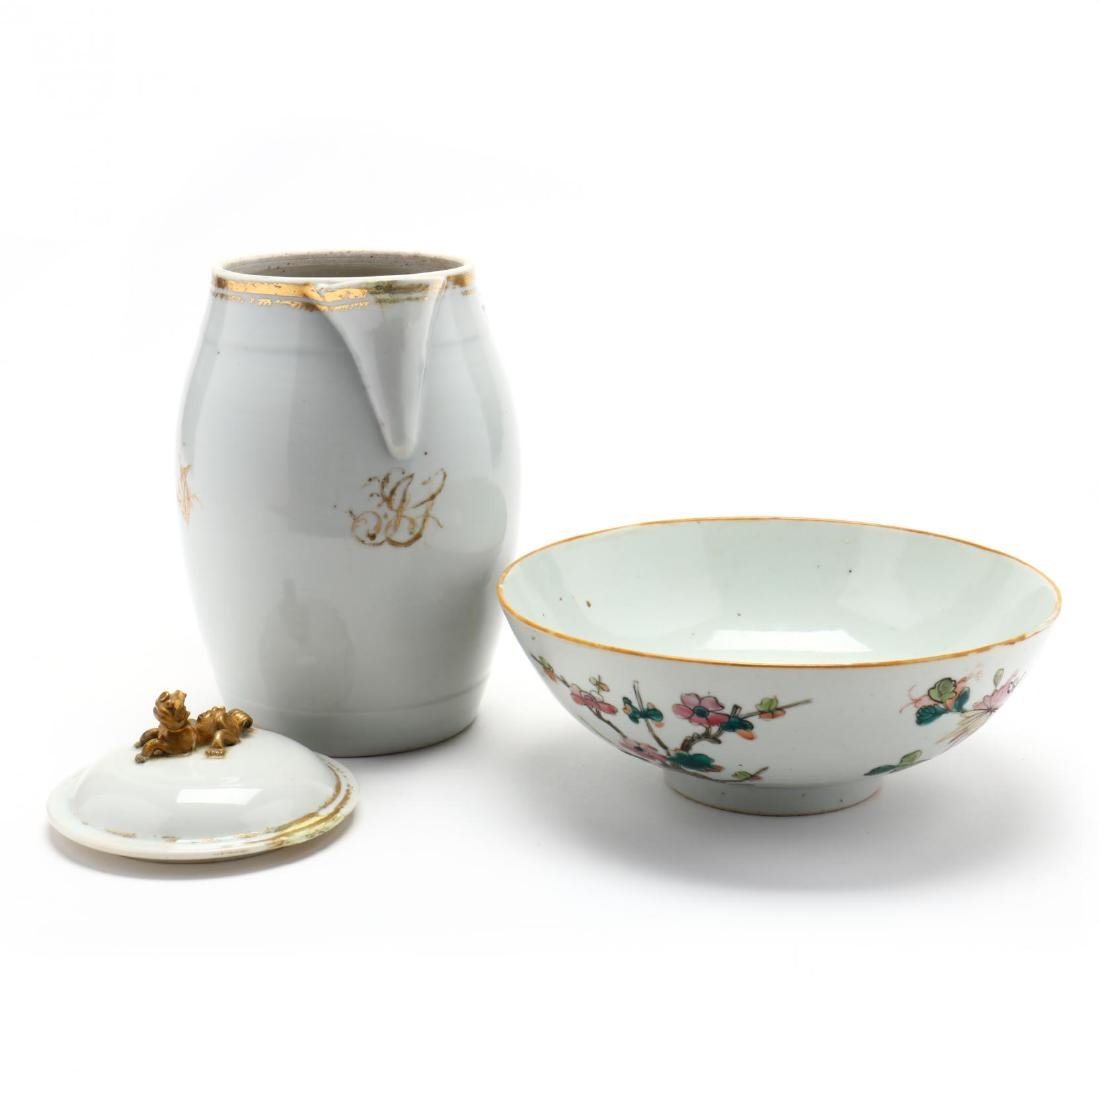 Antique Chinese Export Pitcher and Bowl - 4